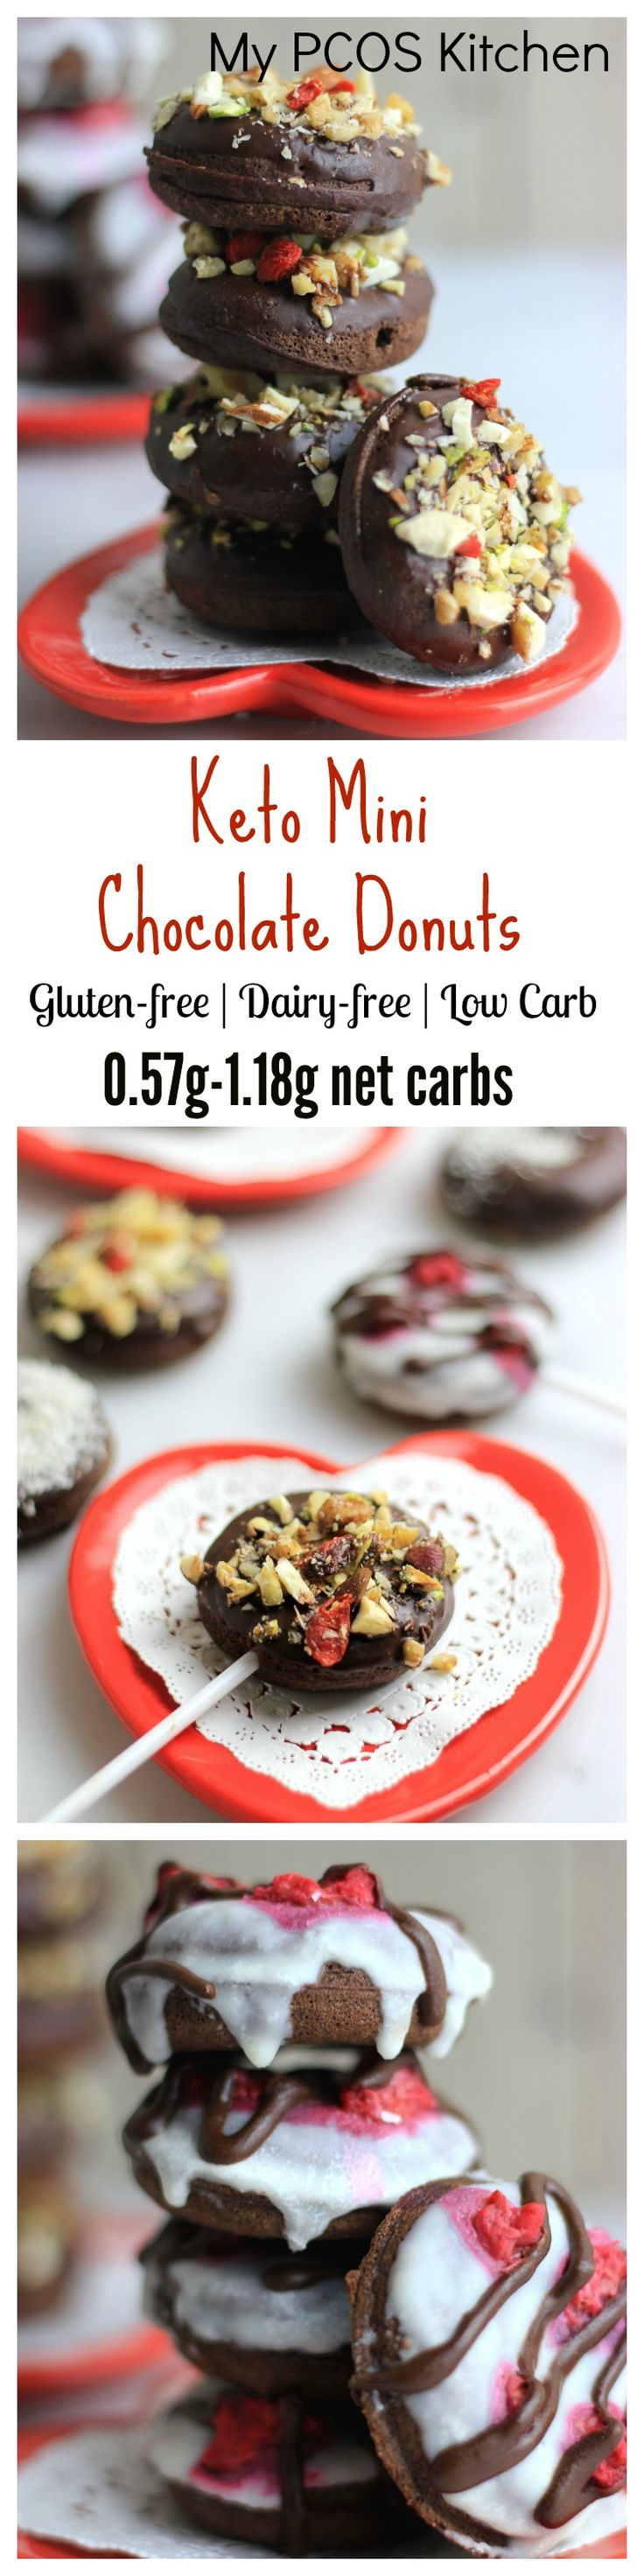 My PCOS Kitchen - Low Carb Mini Chocolate Donuts - Keto, gluten-free, sugar-free and dairy-free donuts perfect for Valentine's day!